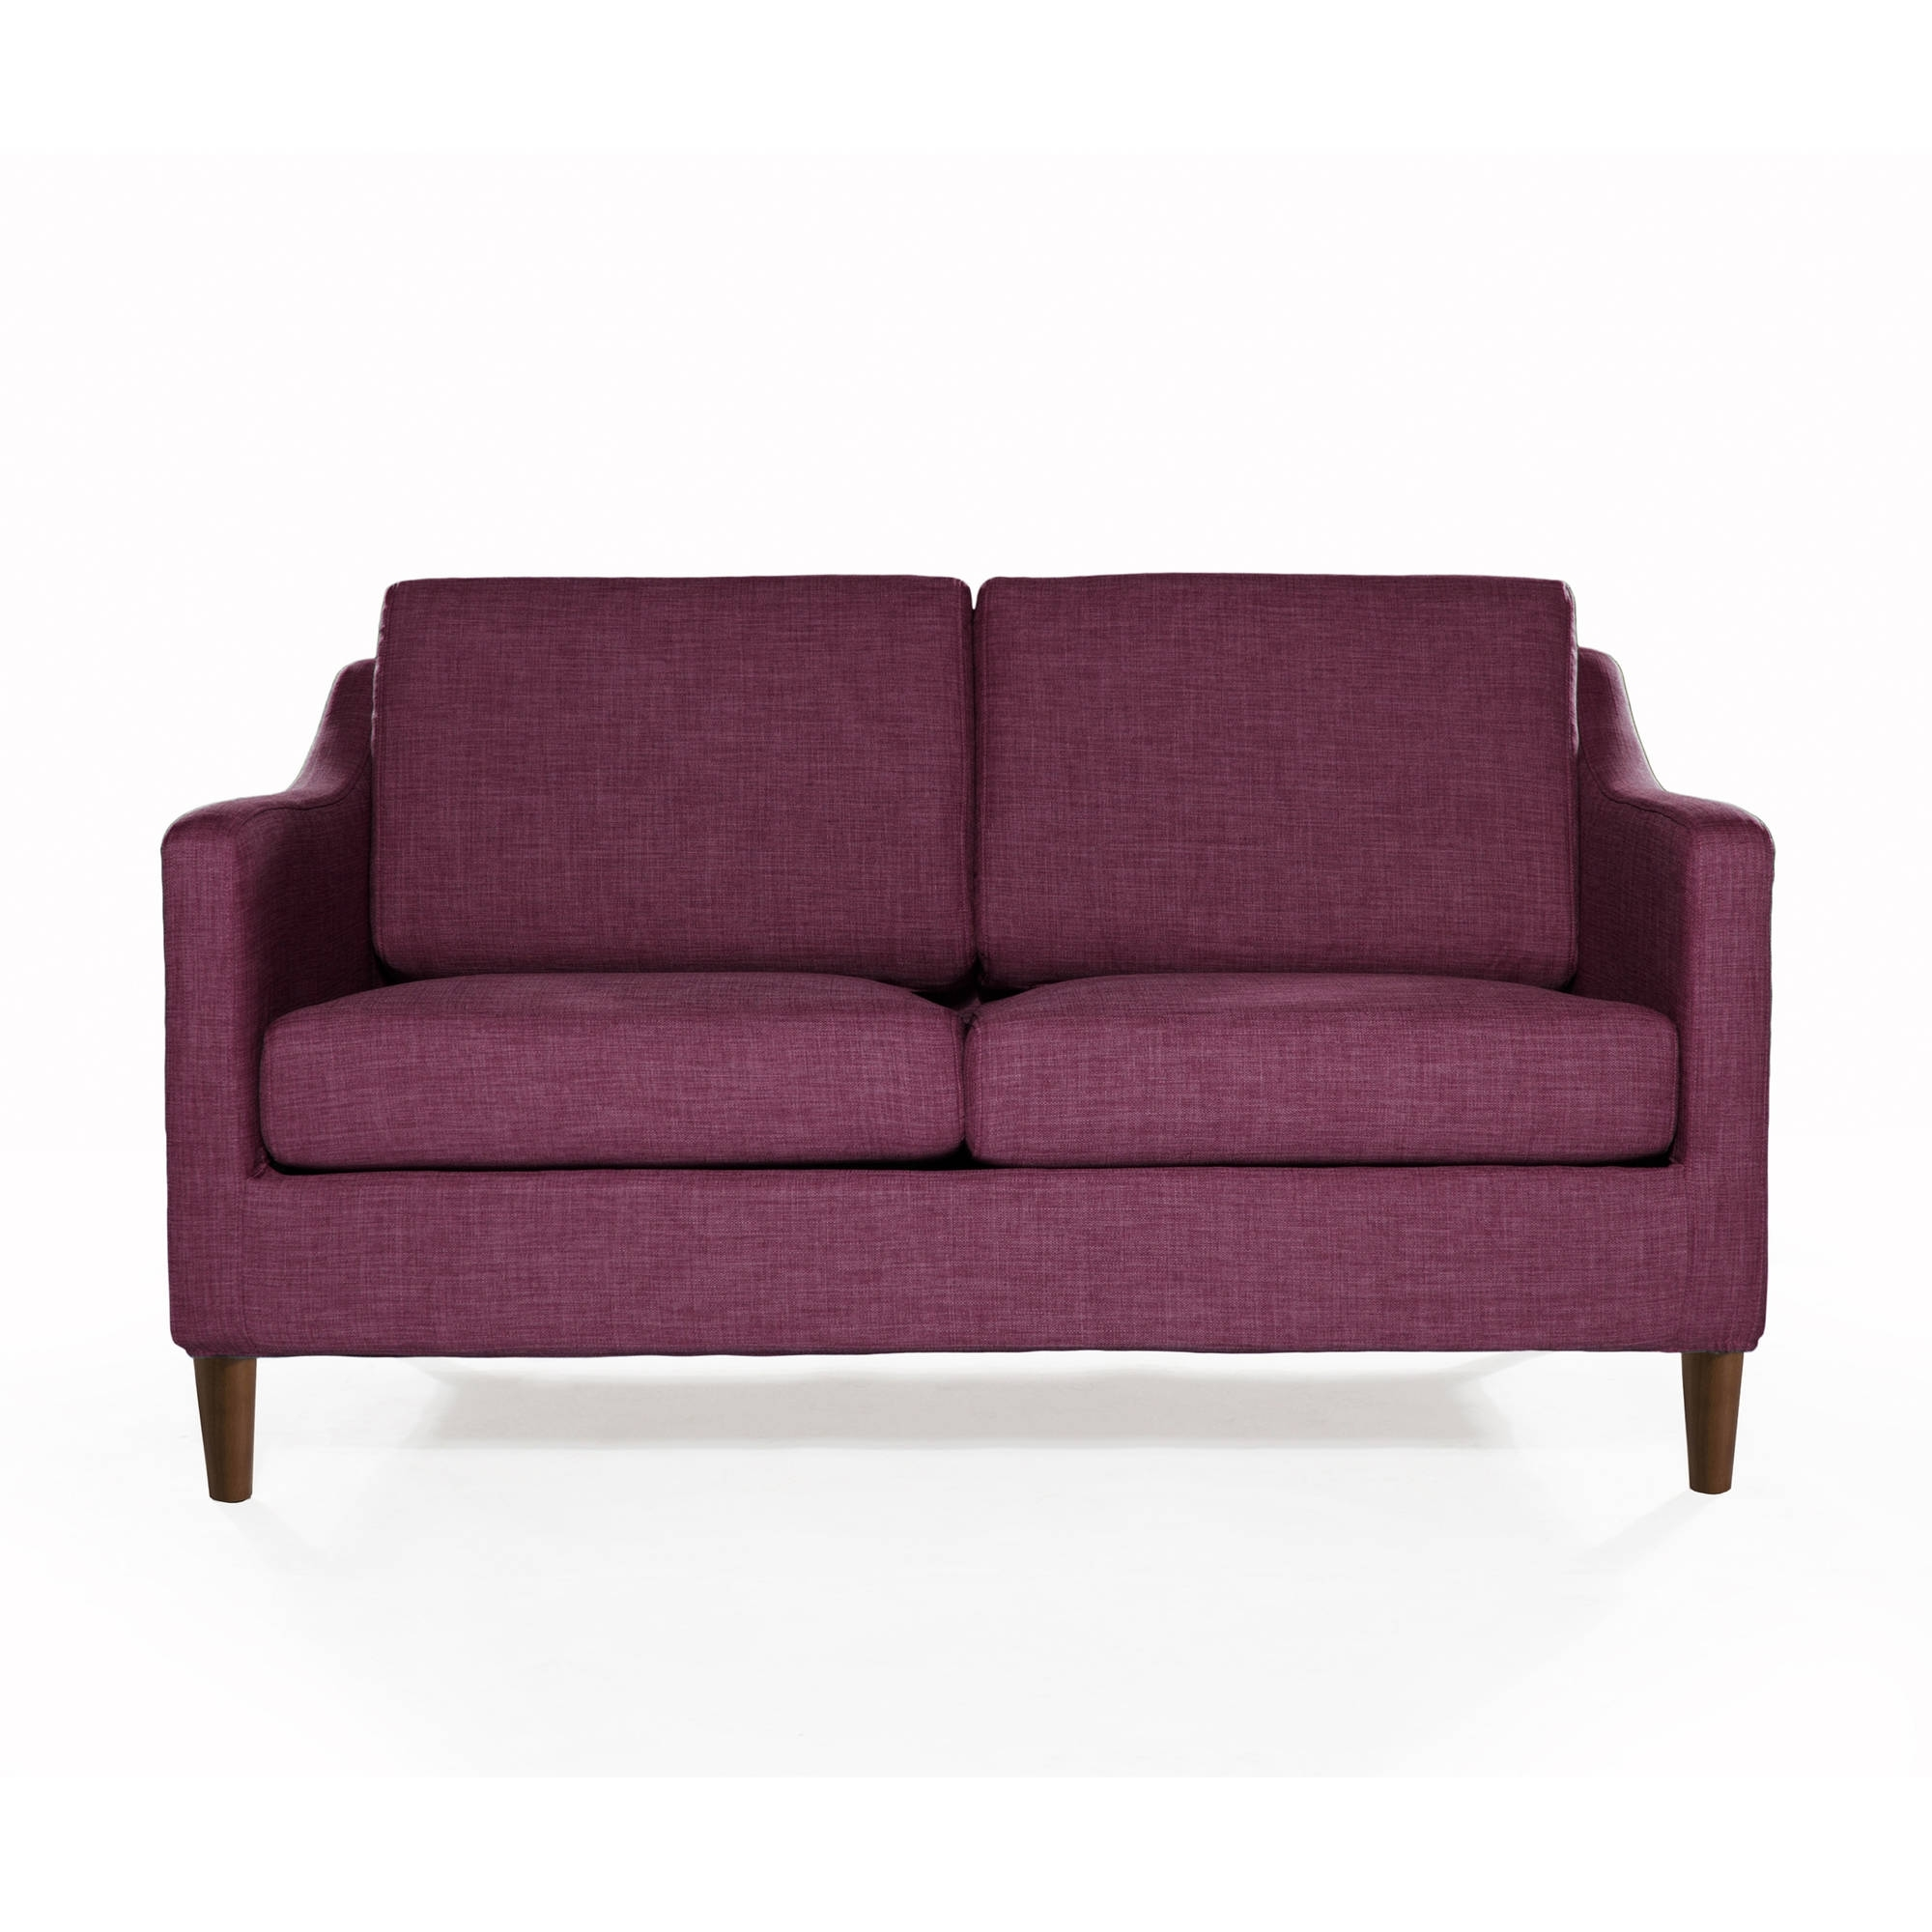 Sectional Sofas – Walmart Pertaining To Sectional Sofas At Walmart (View 2 of 10)